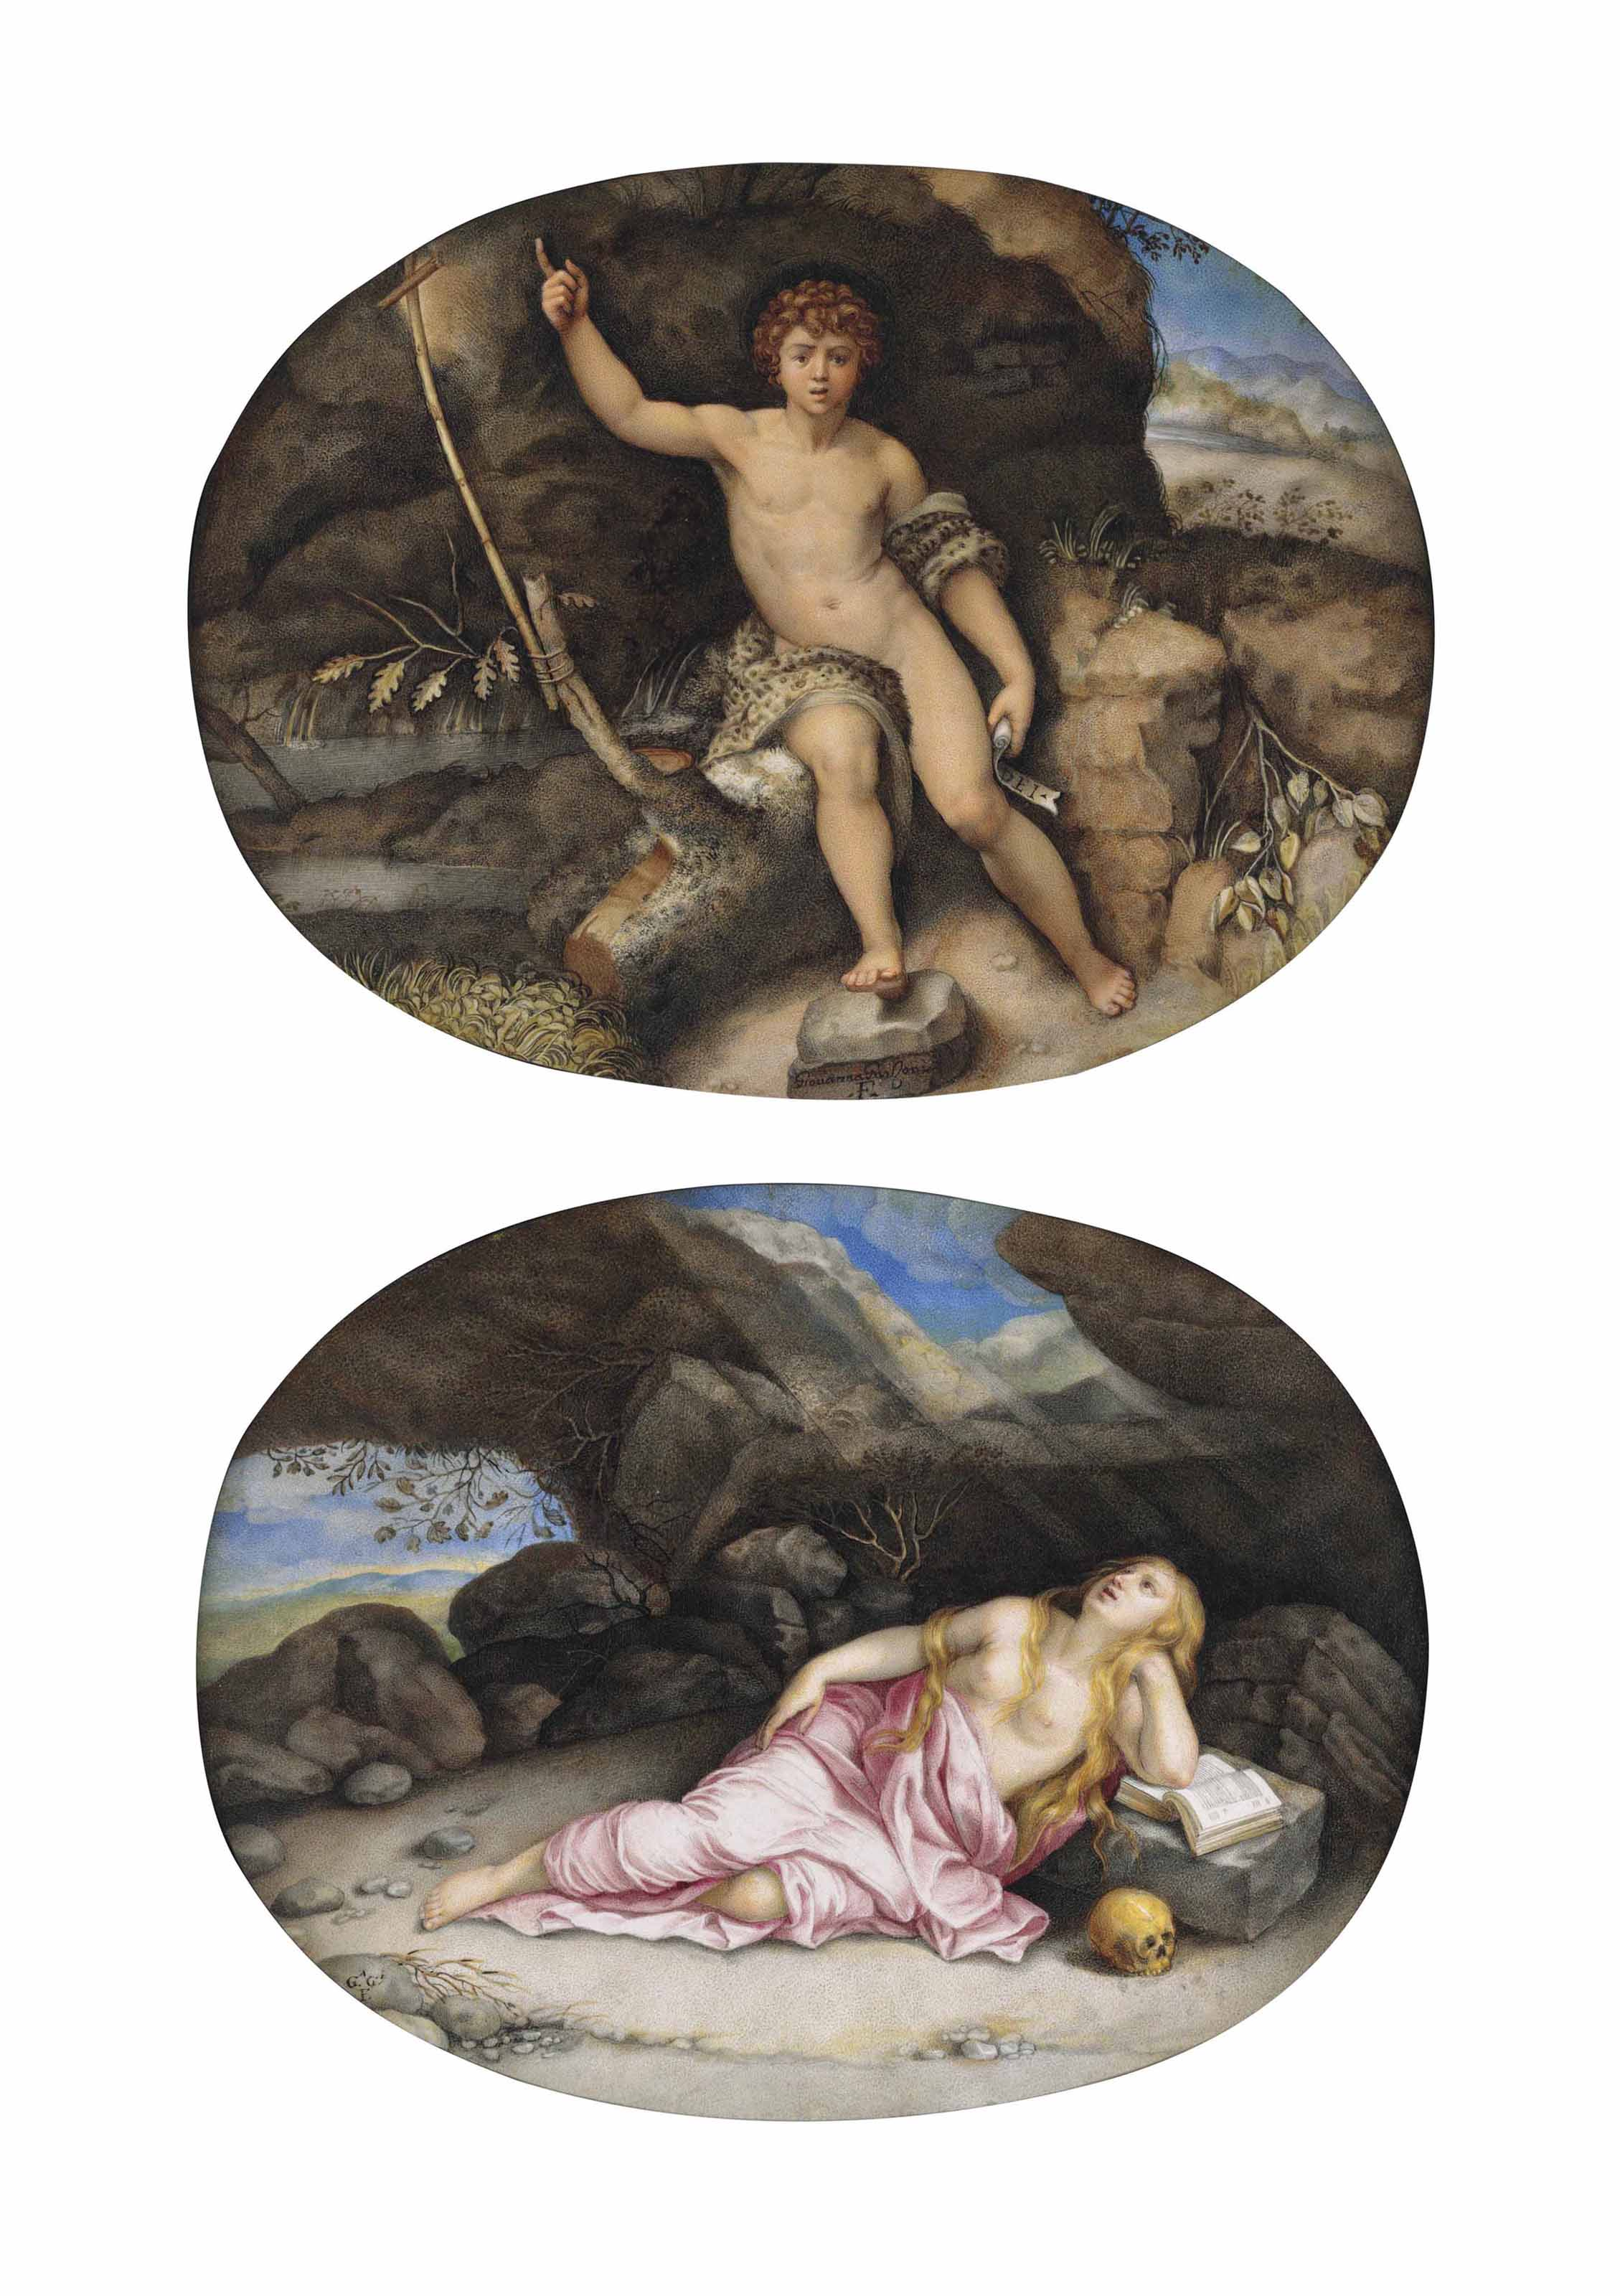 Saint John the Baptist in the Wilderness, after Raphael; and Mary Magdalen in the Desert, after Orazio Gentileschi